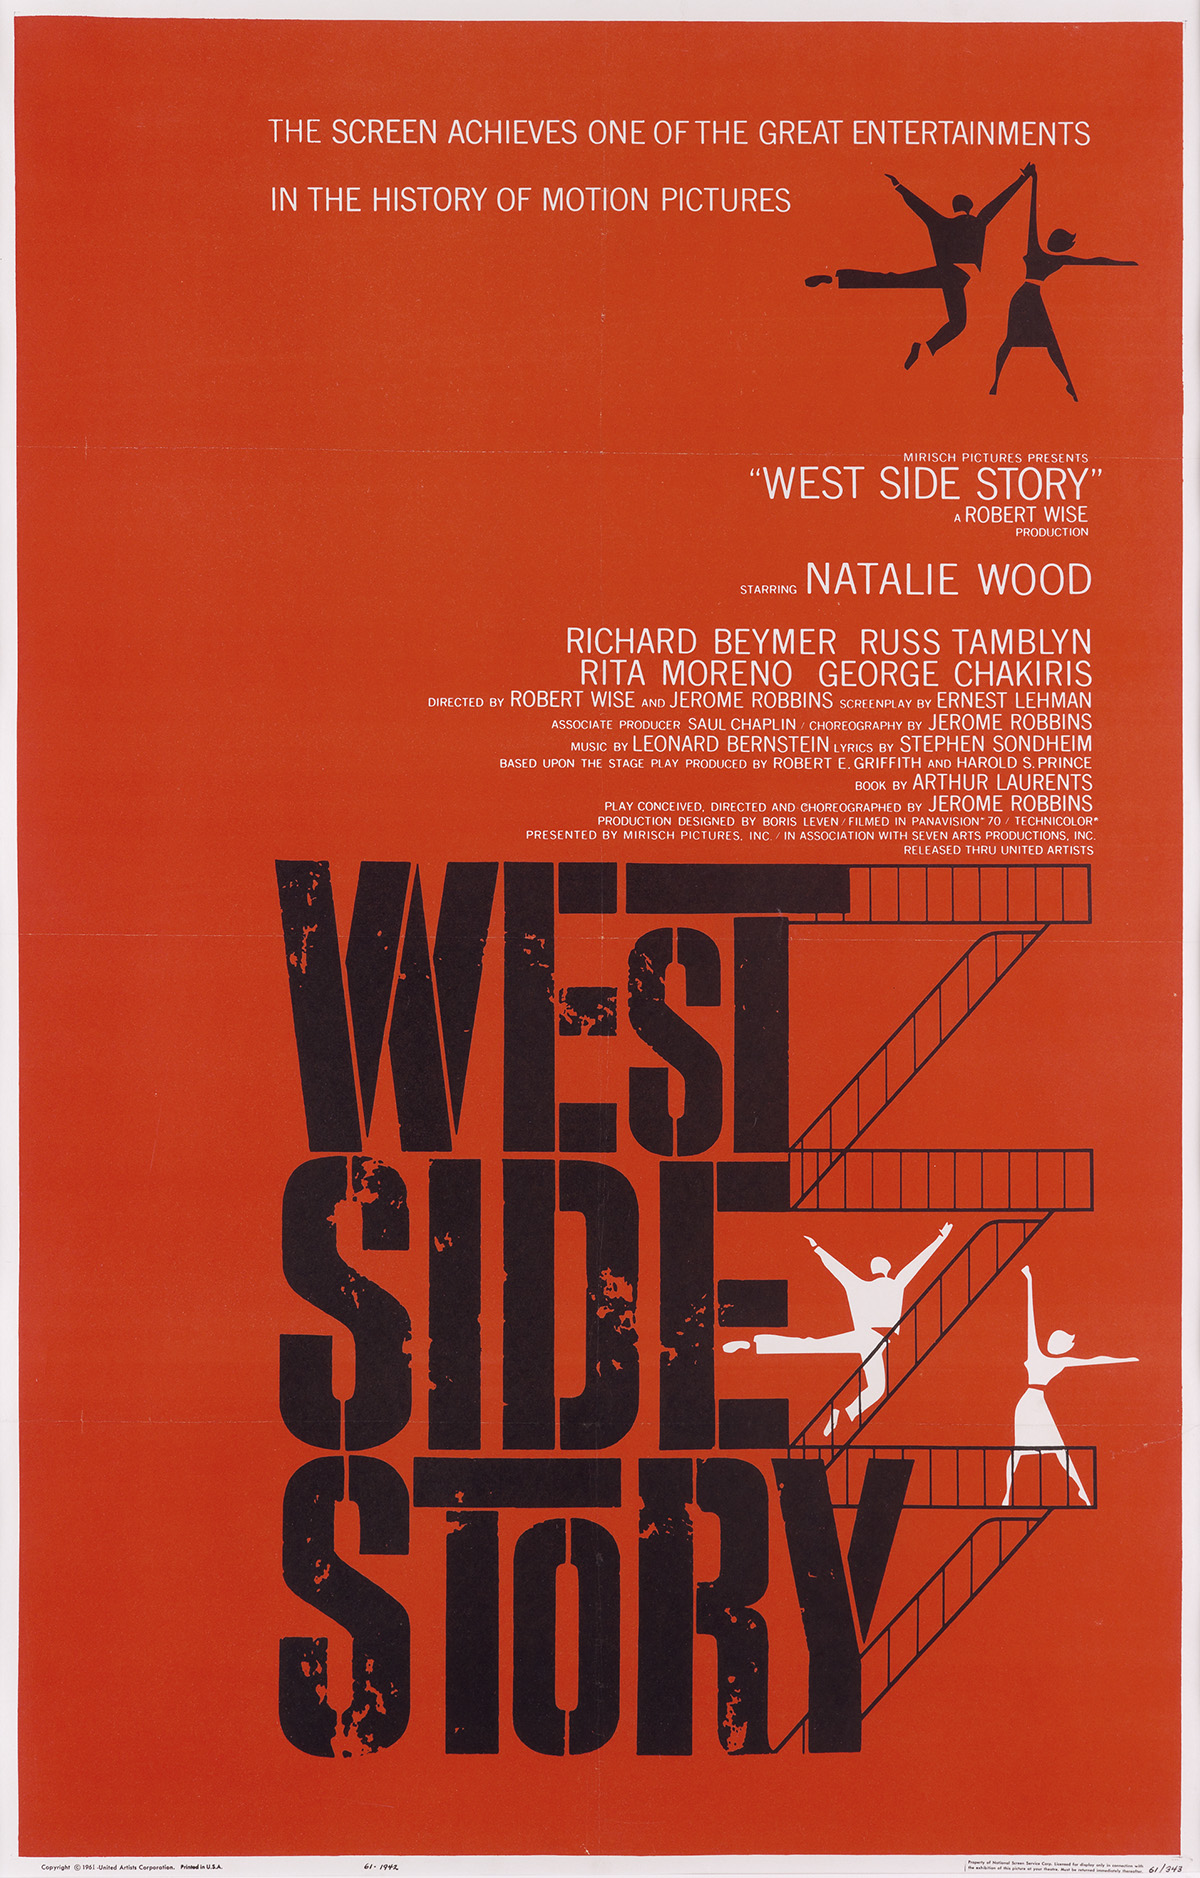 JOSEPH-CAROFF-(1921--)-WEST-SIDE-STORY-1961-40x25-inches-102